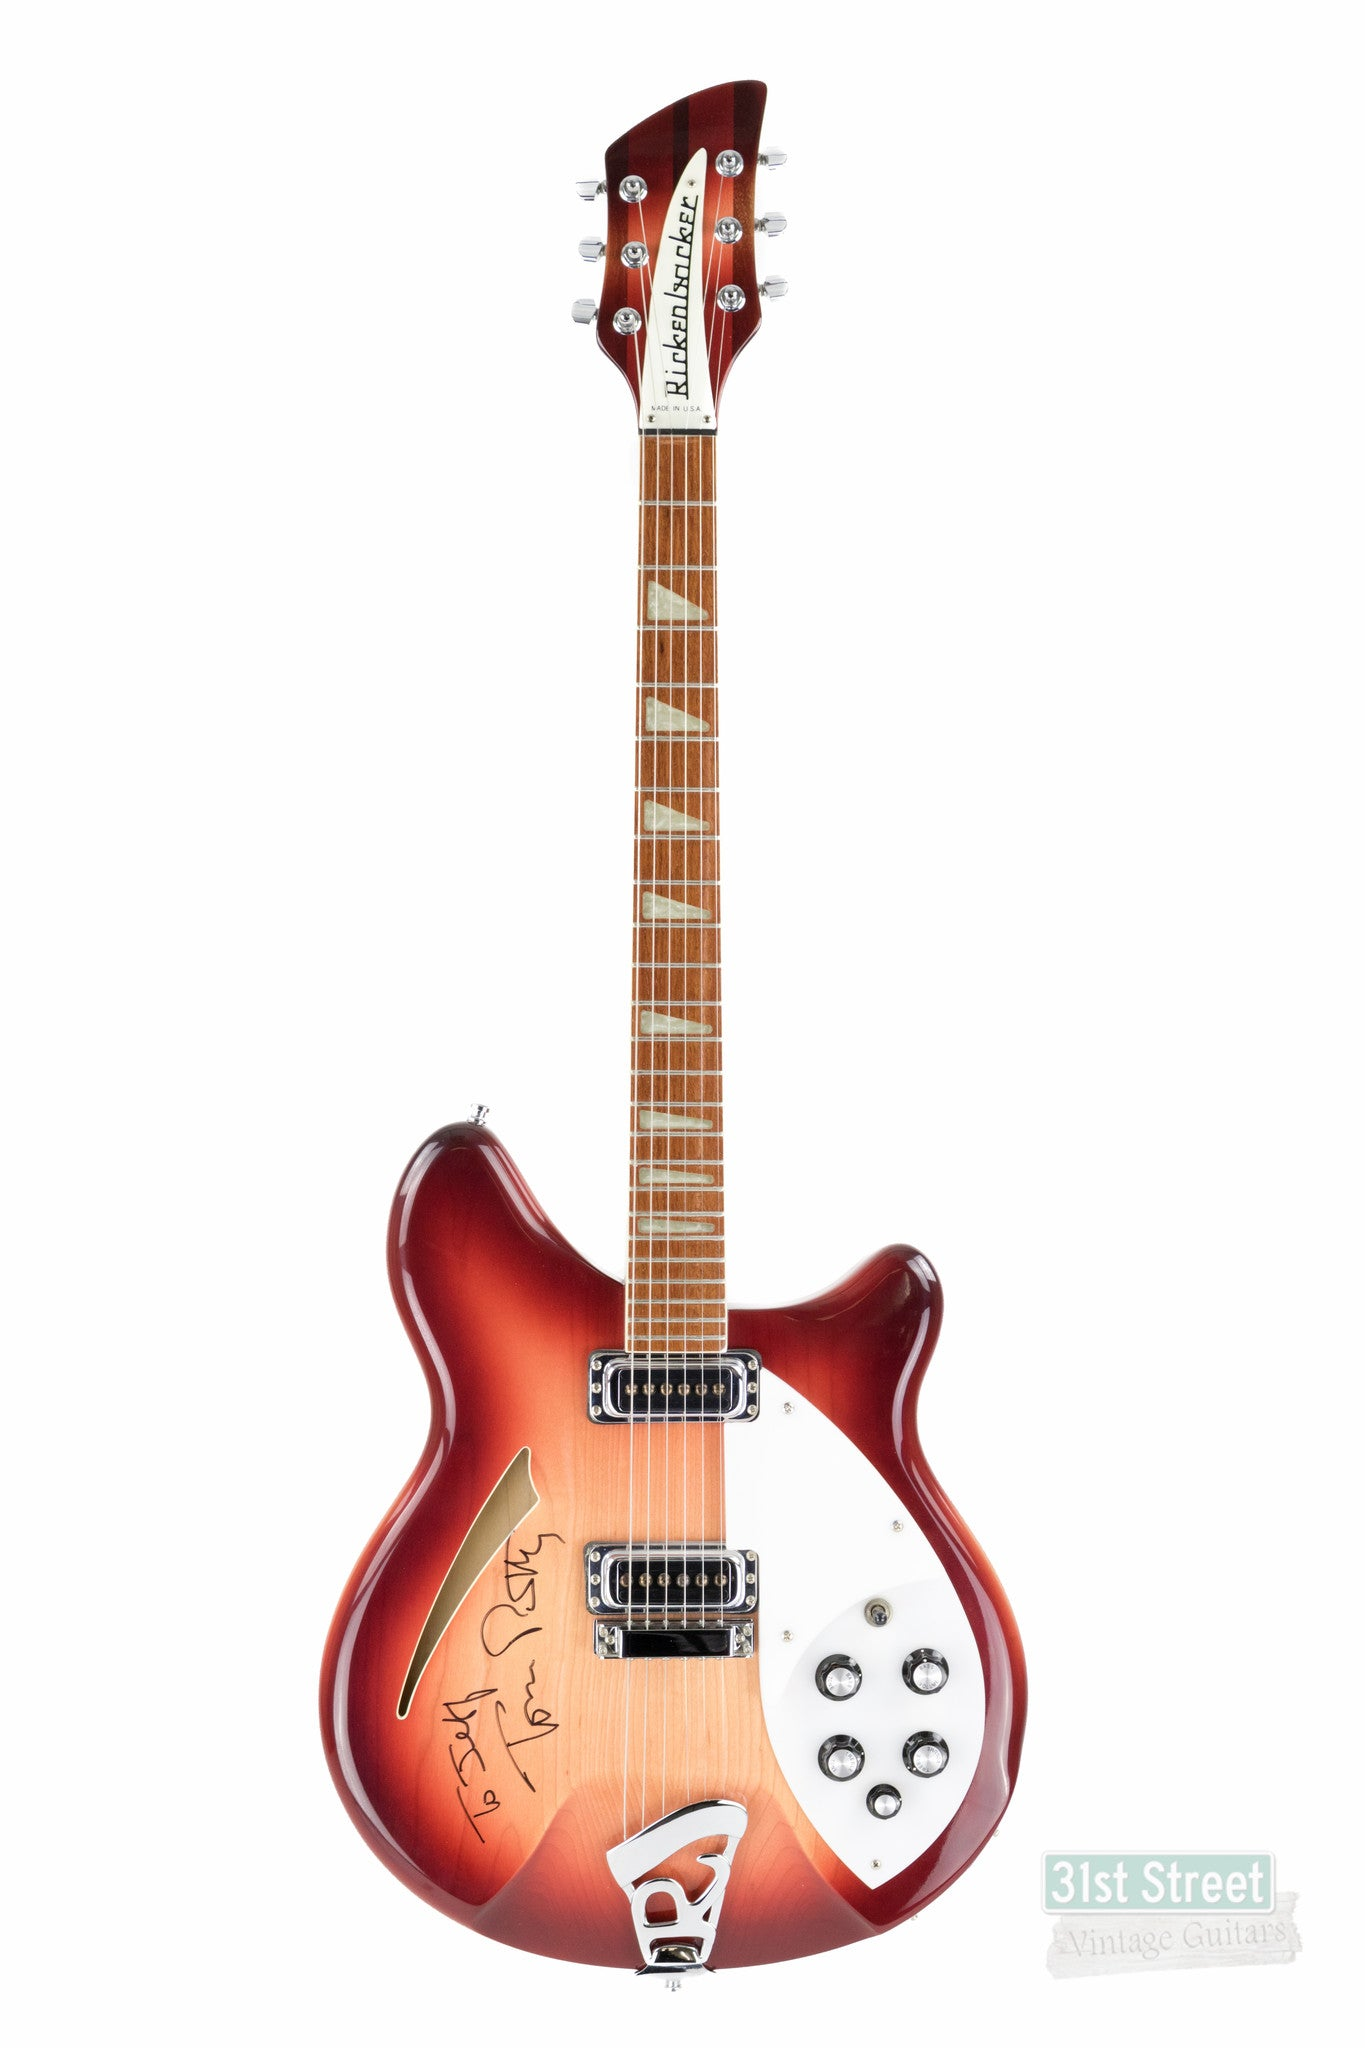 rickenbacker 360 fireglo 1995 tom petty autographed 31st street vintage guitars. Black Bedroom Furniture Sets. Home Design Ideas